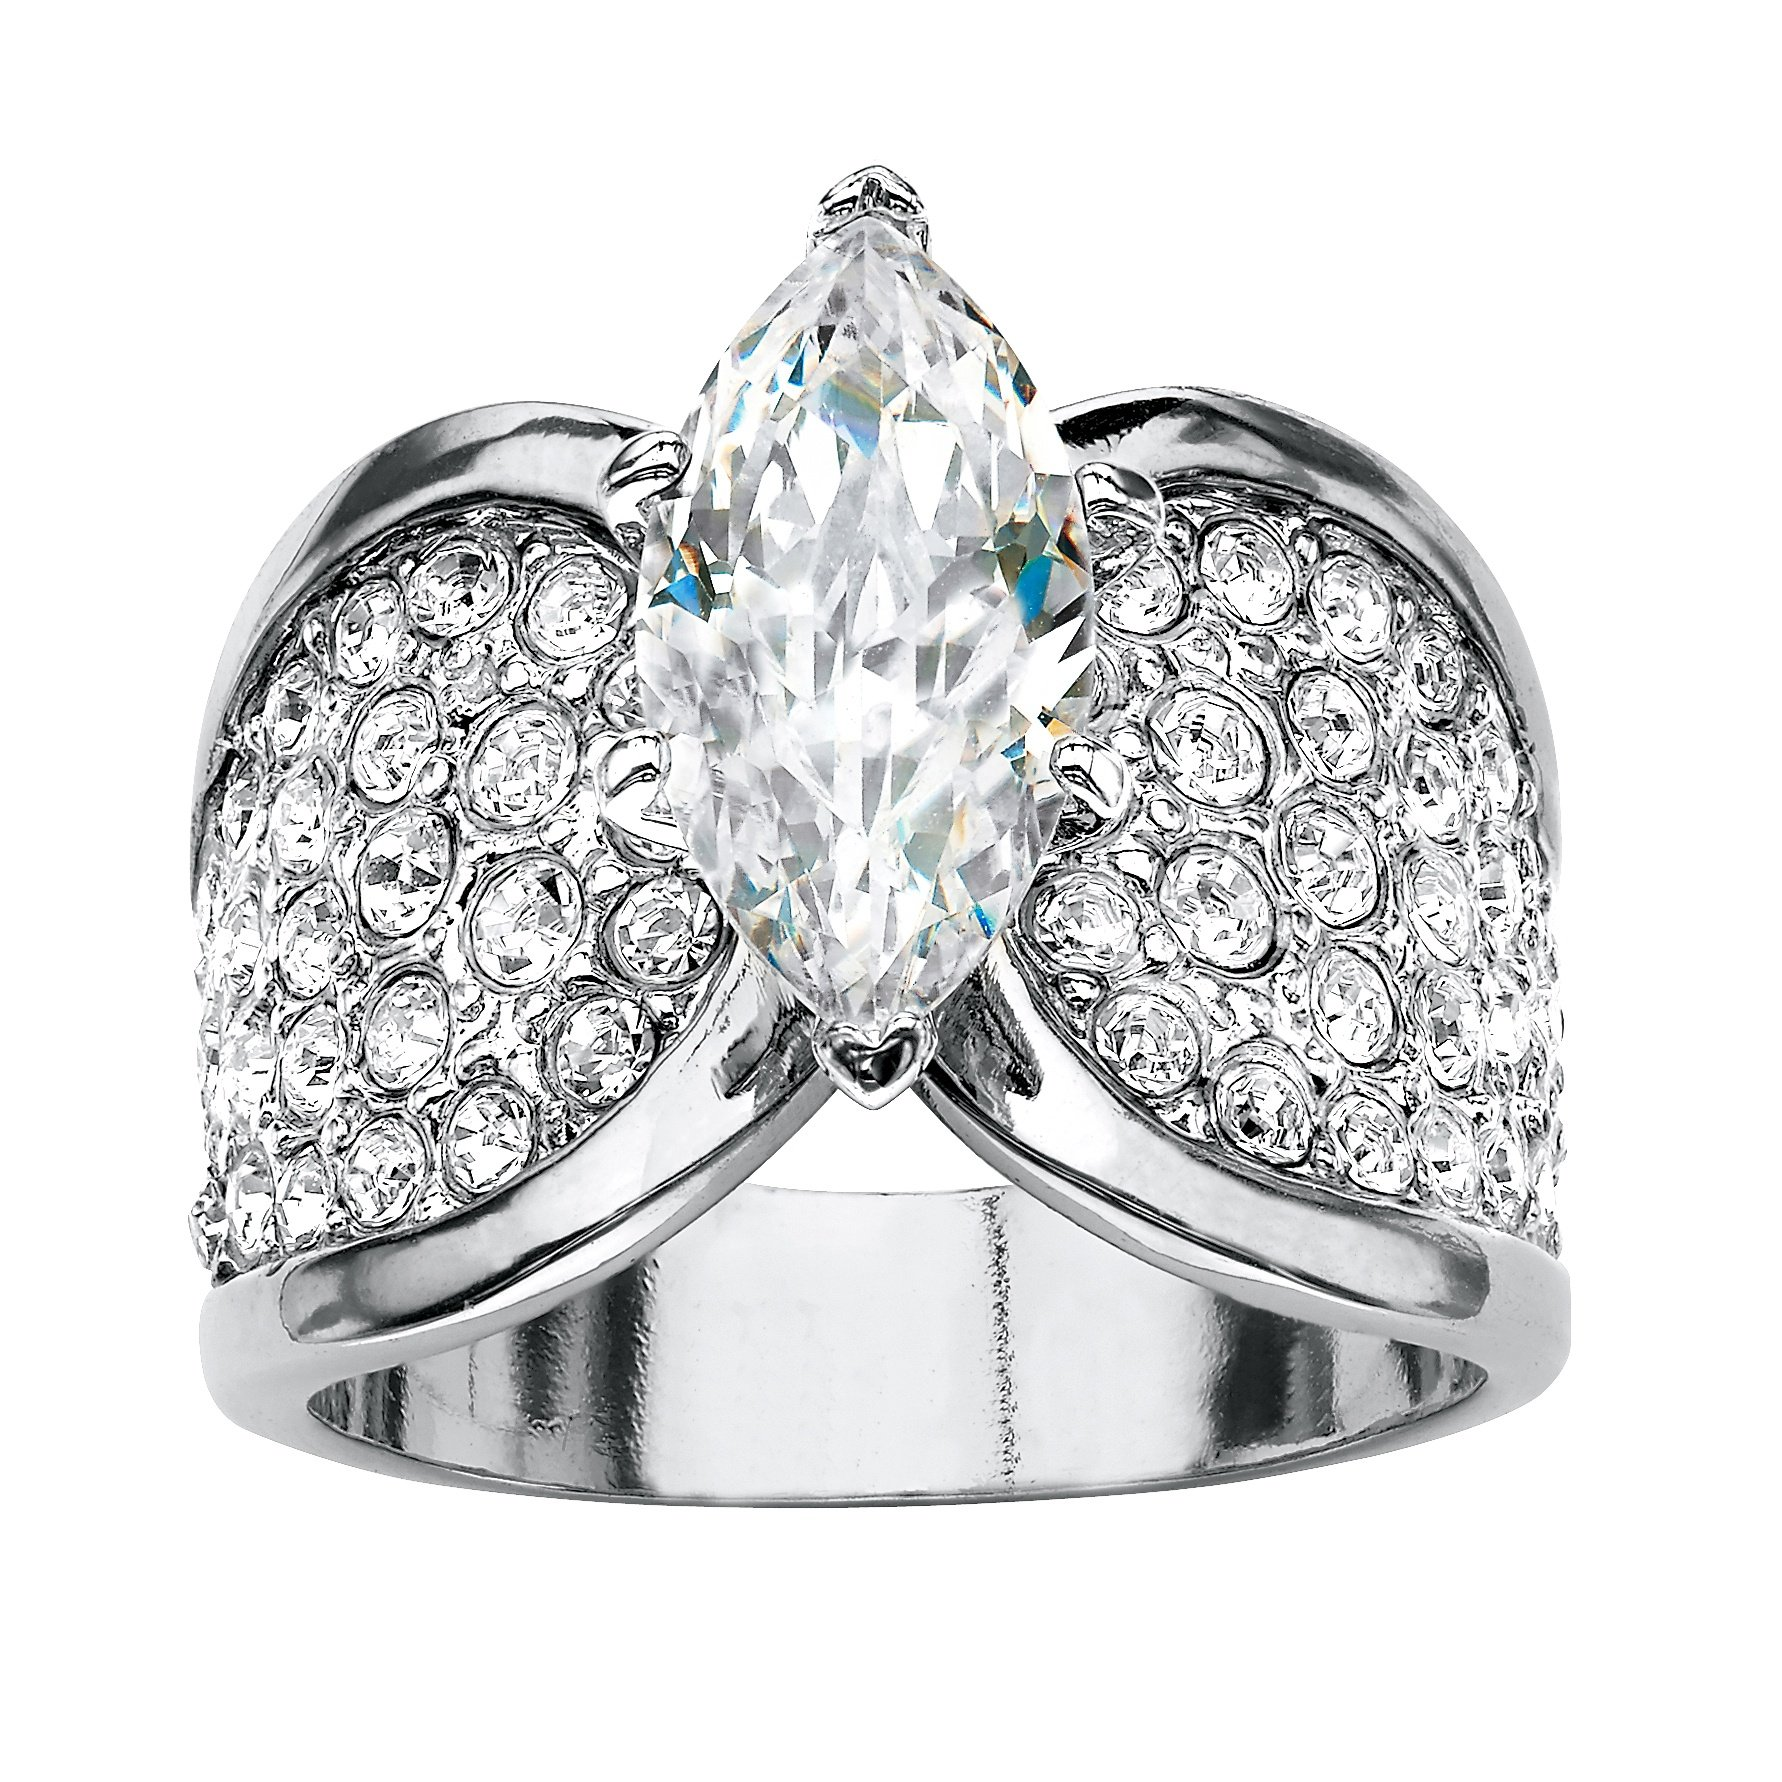 Marquise-Cut and Pave White Cubic Zirconia Platinum-Plated Engagement Ring Size 8